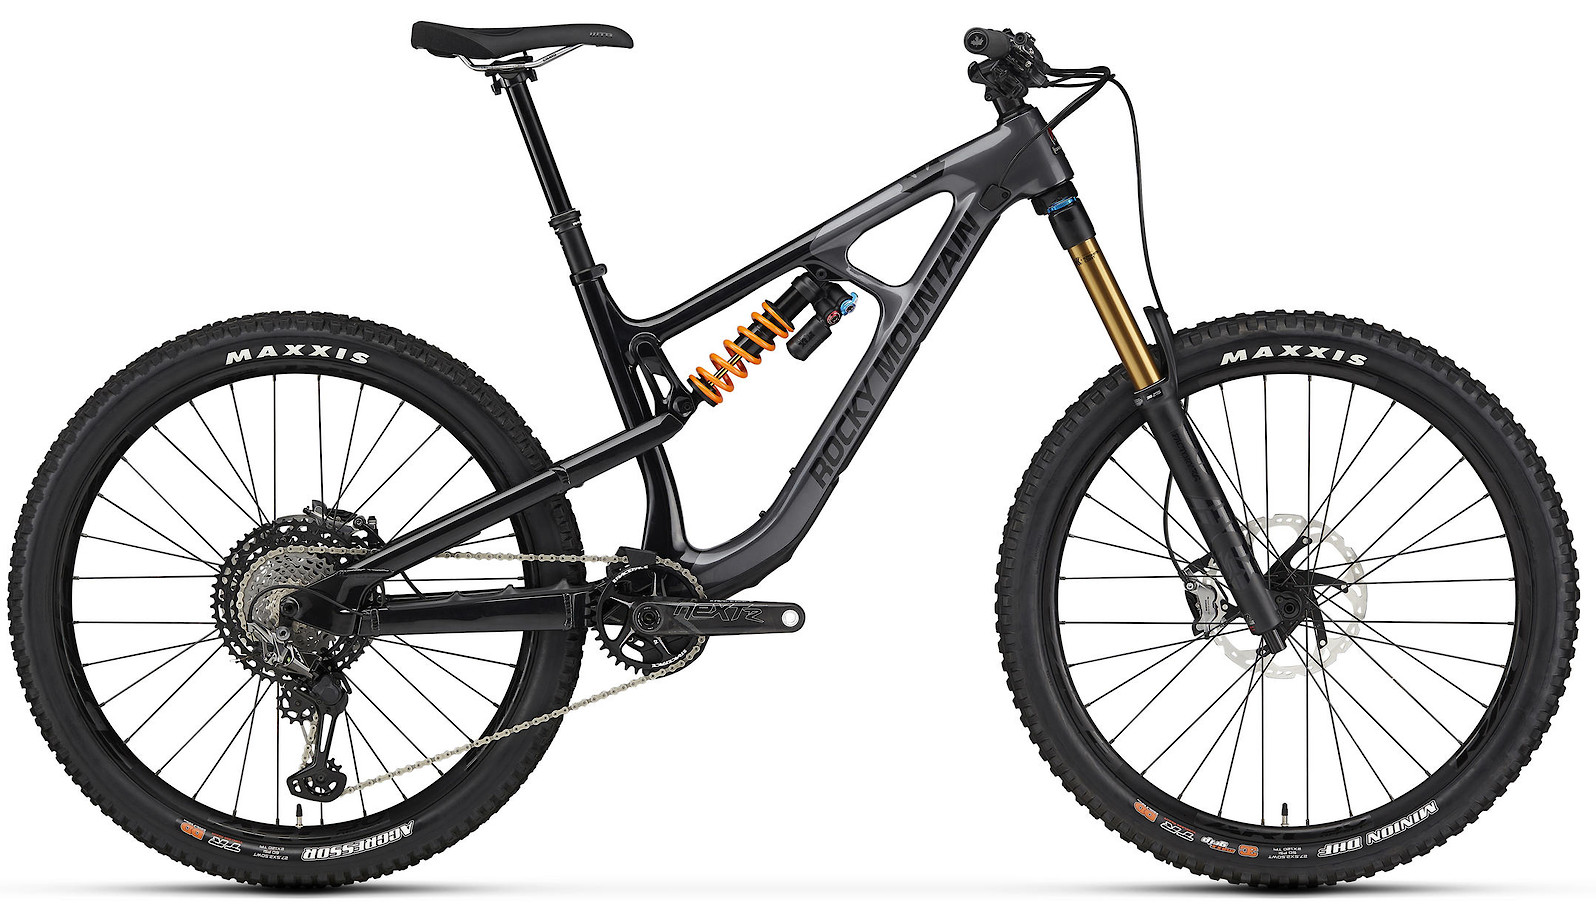 2020 Rocky Mountain Slayer Carbon 90 27.5 Gray and Black